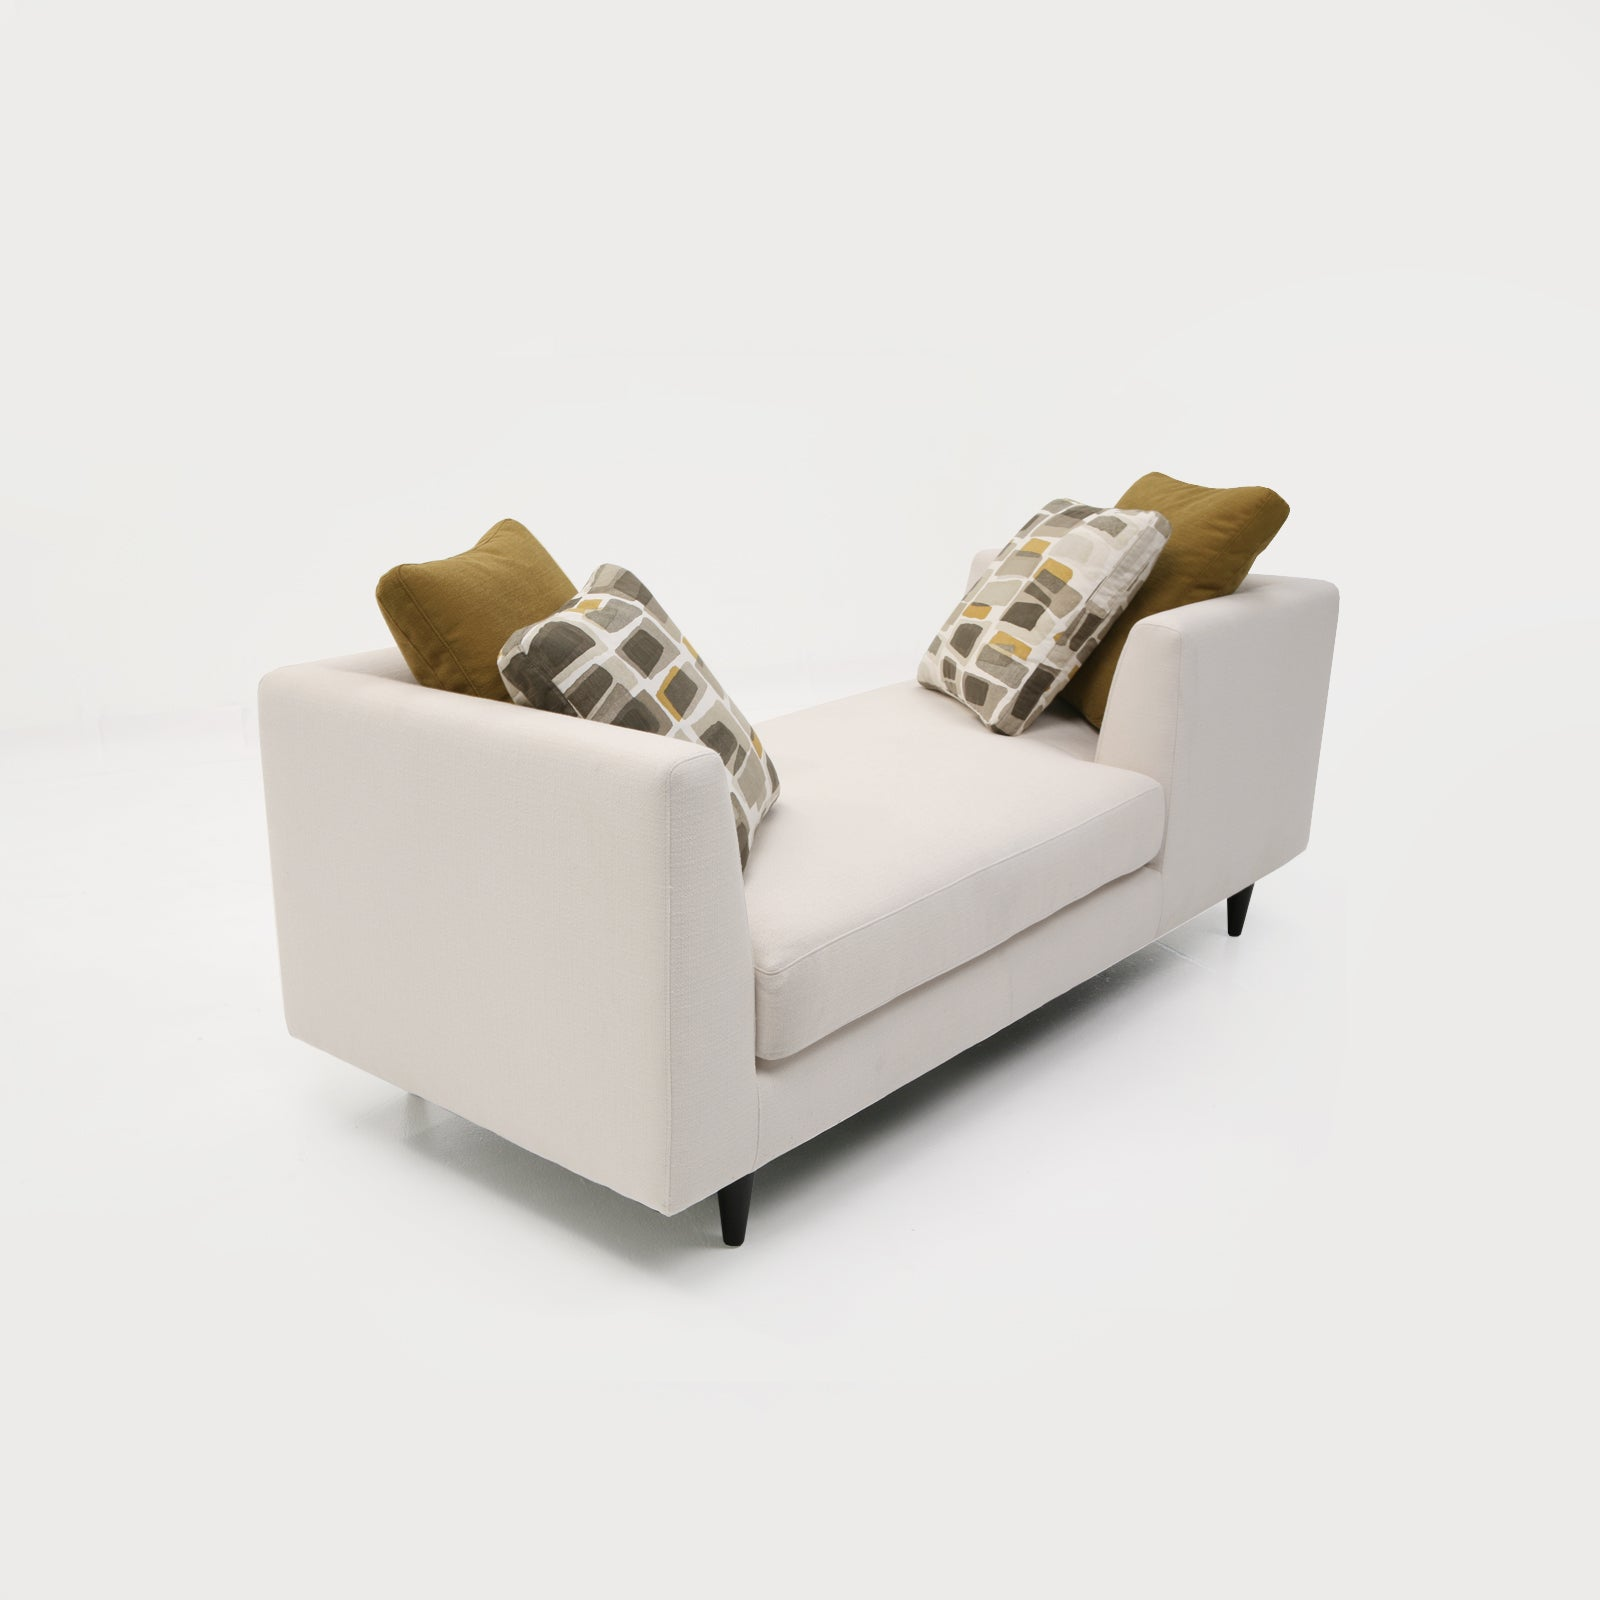 Focus One Home Joins the Trade Source Furniture Collection